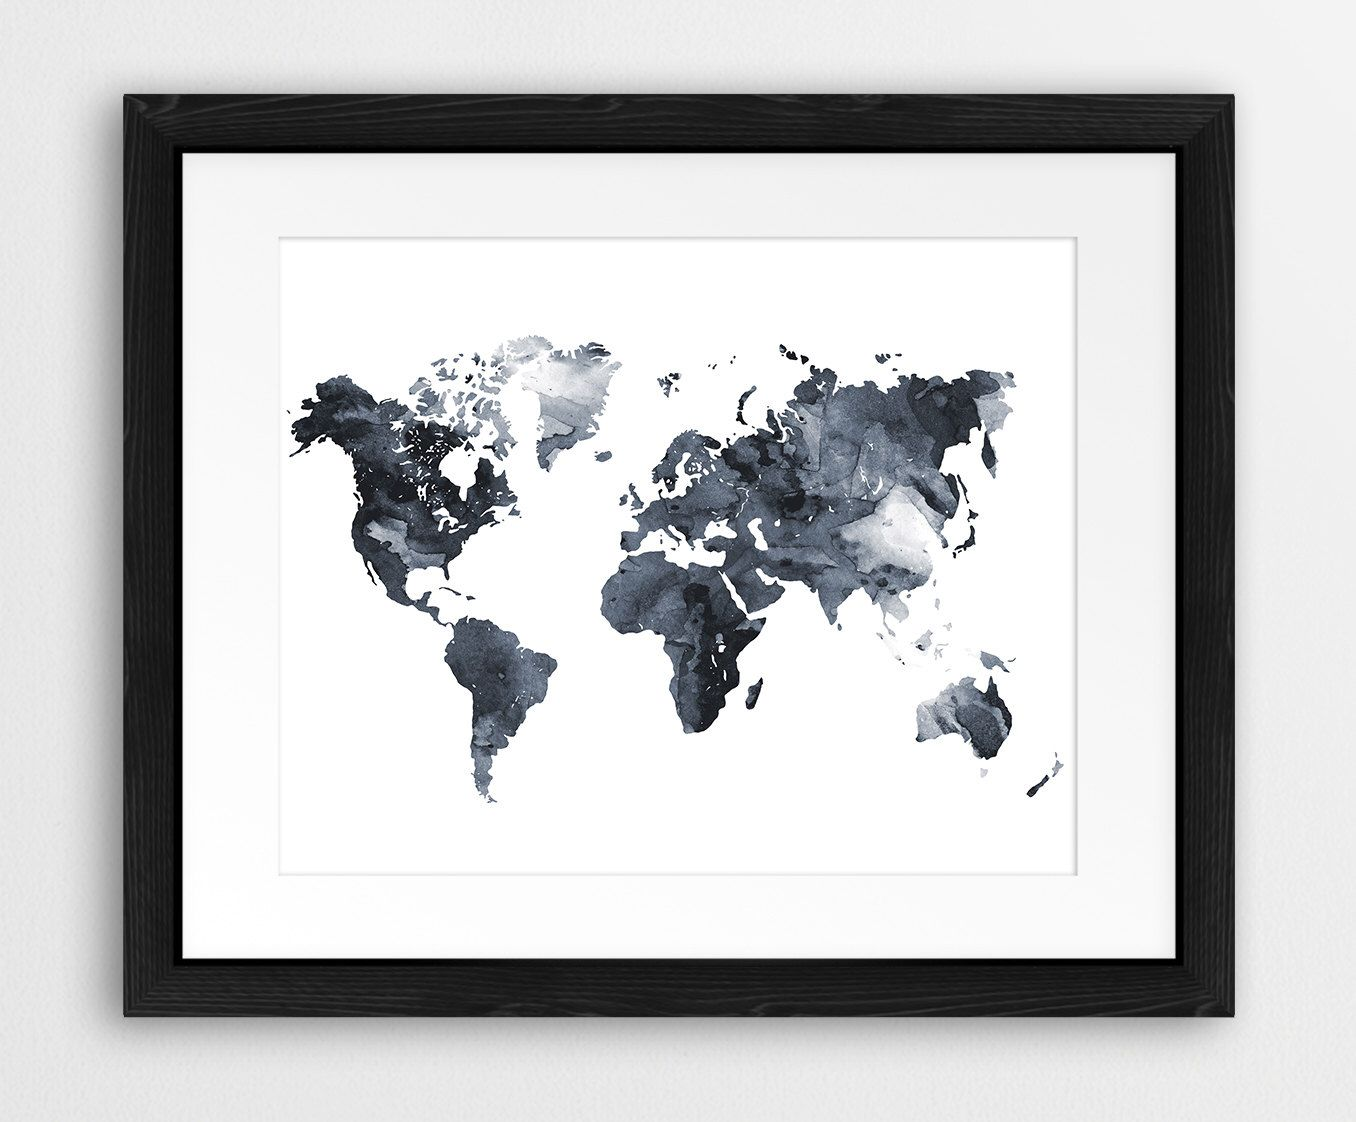 World map watercolor print world map poster watercolor grey black world map watercolor print world map poster watercolor grey black and white modern wall art home office decor travel art printable art gumiabroncs